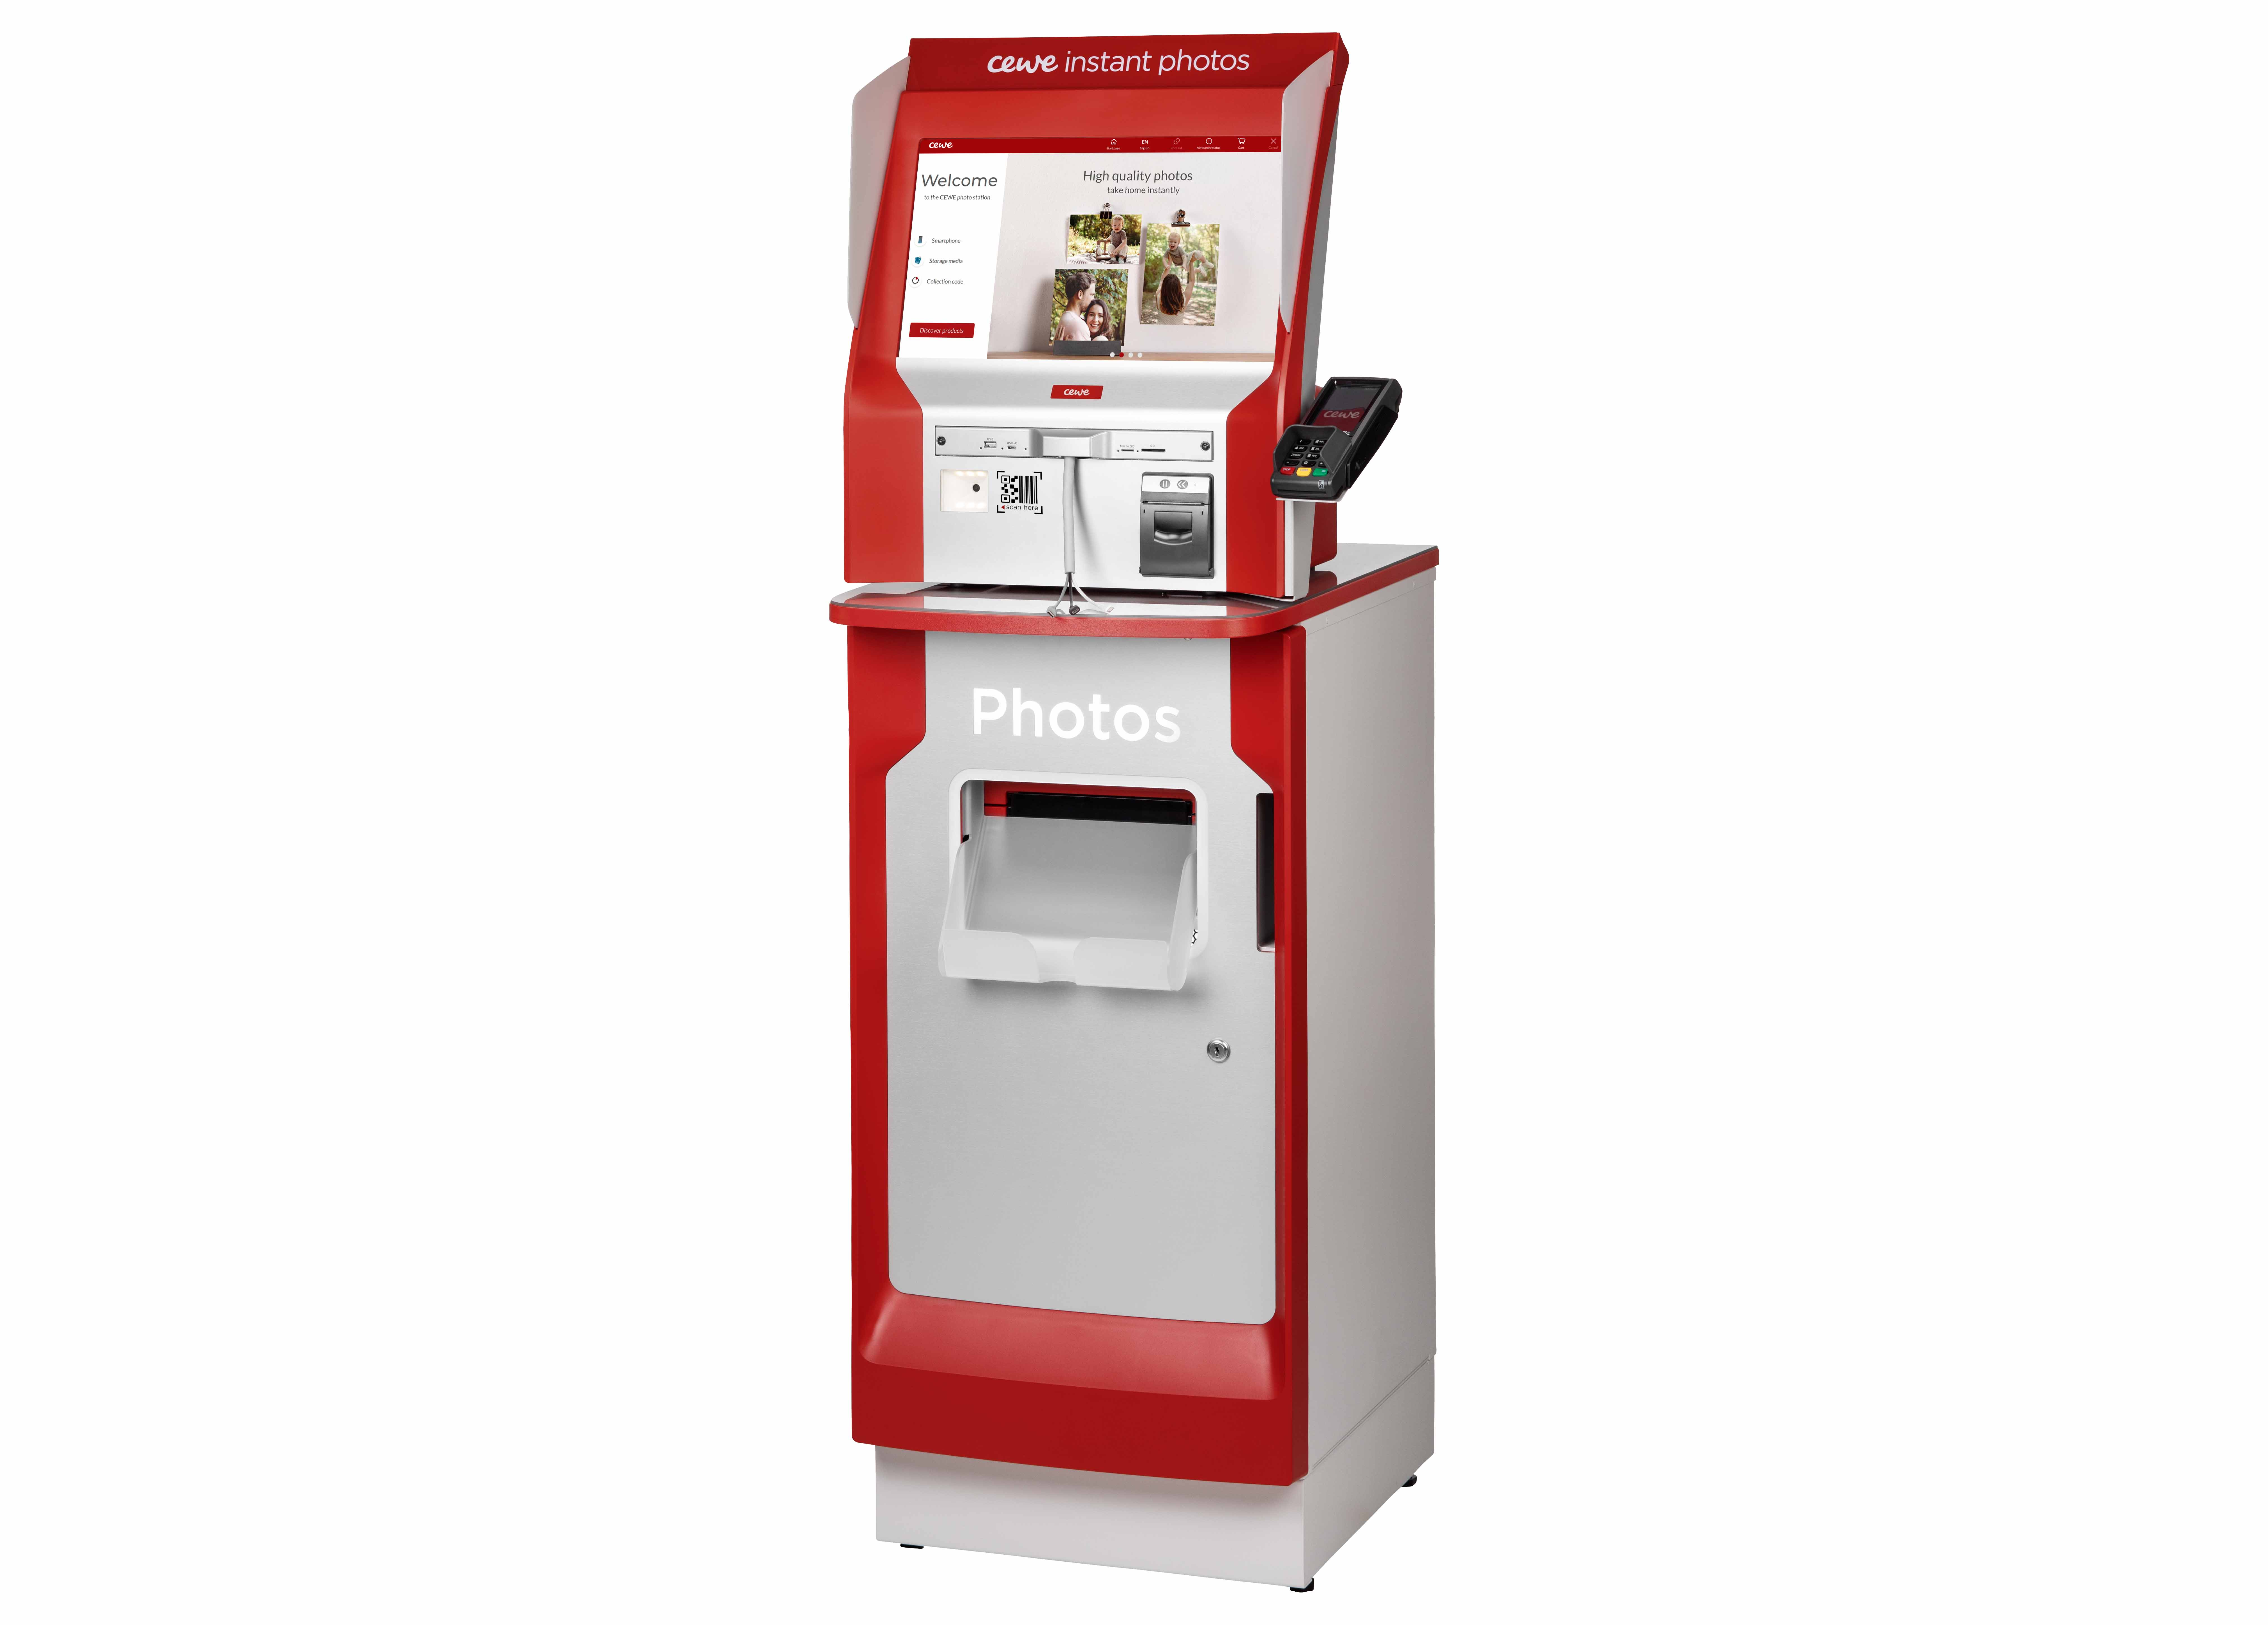 Computop Equips CEWE Photo Stations with Payment Function